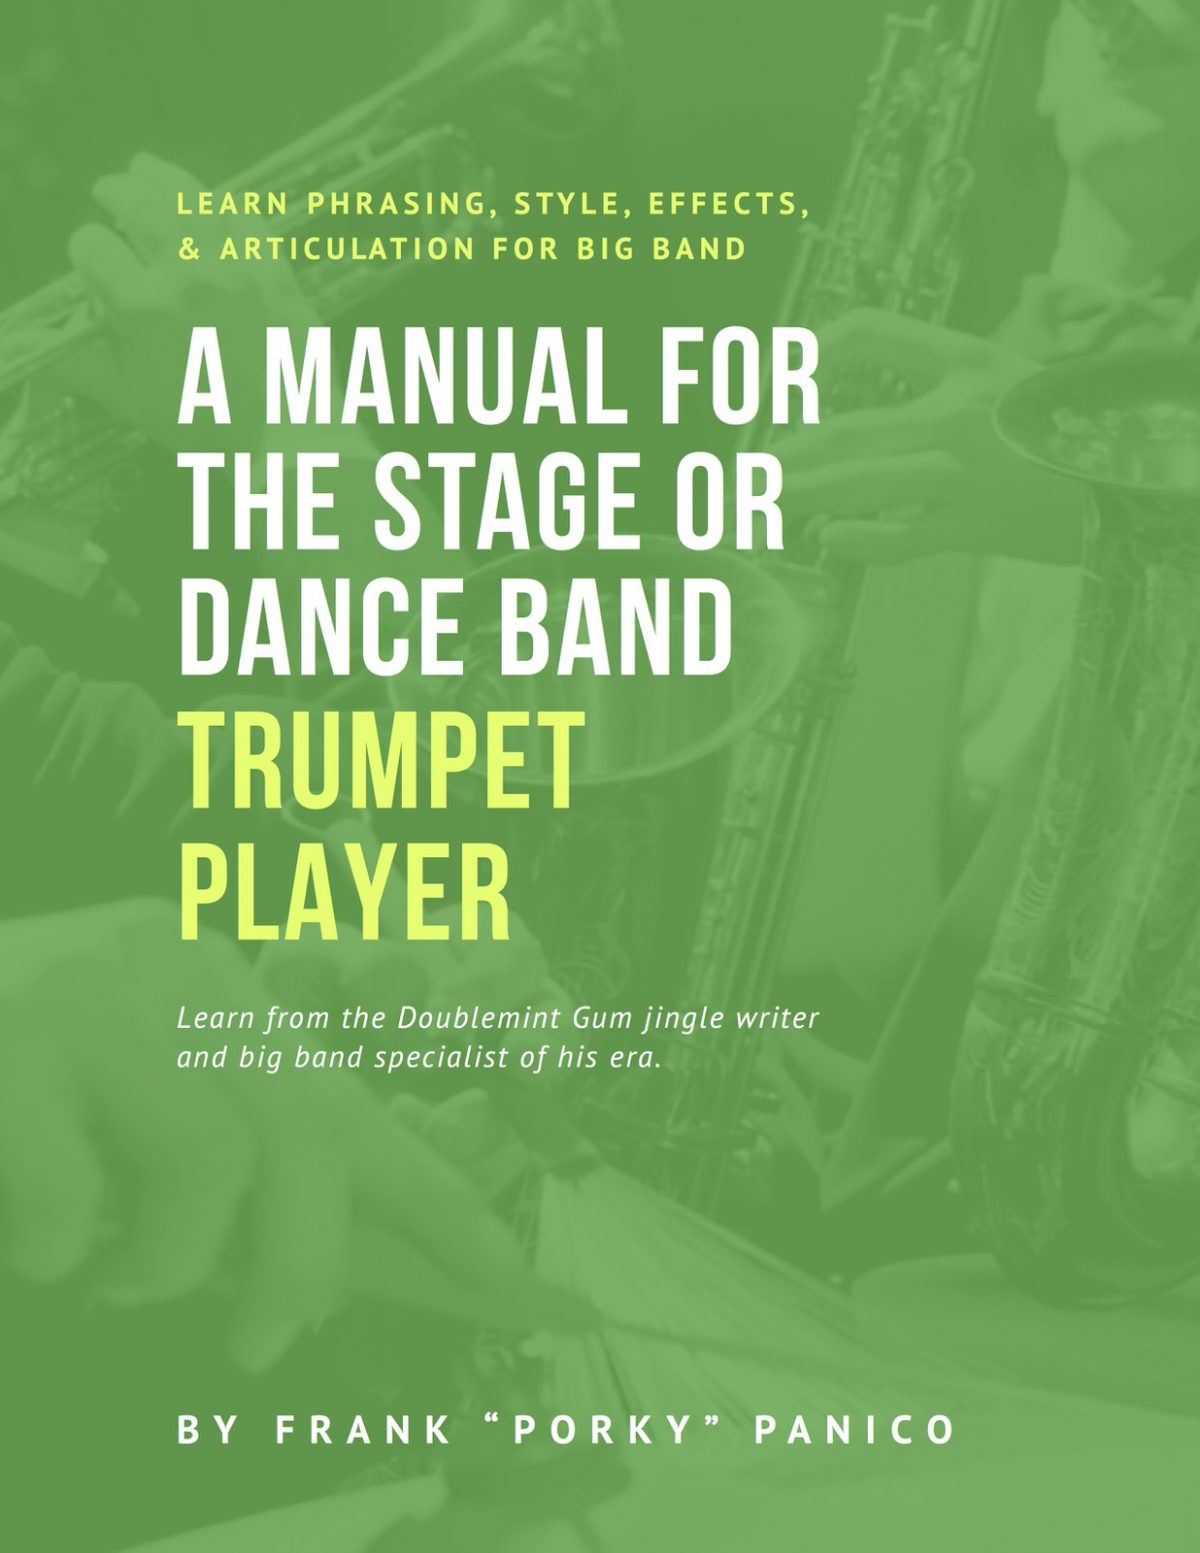 Panico, A Manual for the Stage or Dance Band Trumpet Player-p001